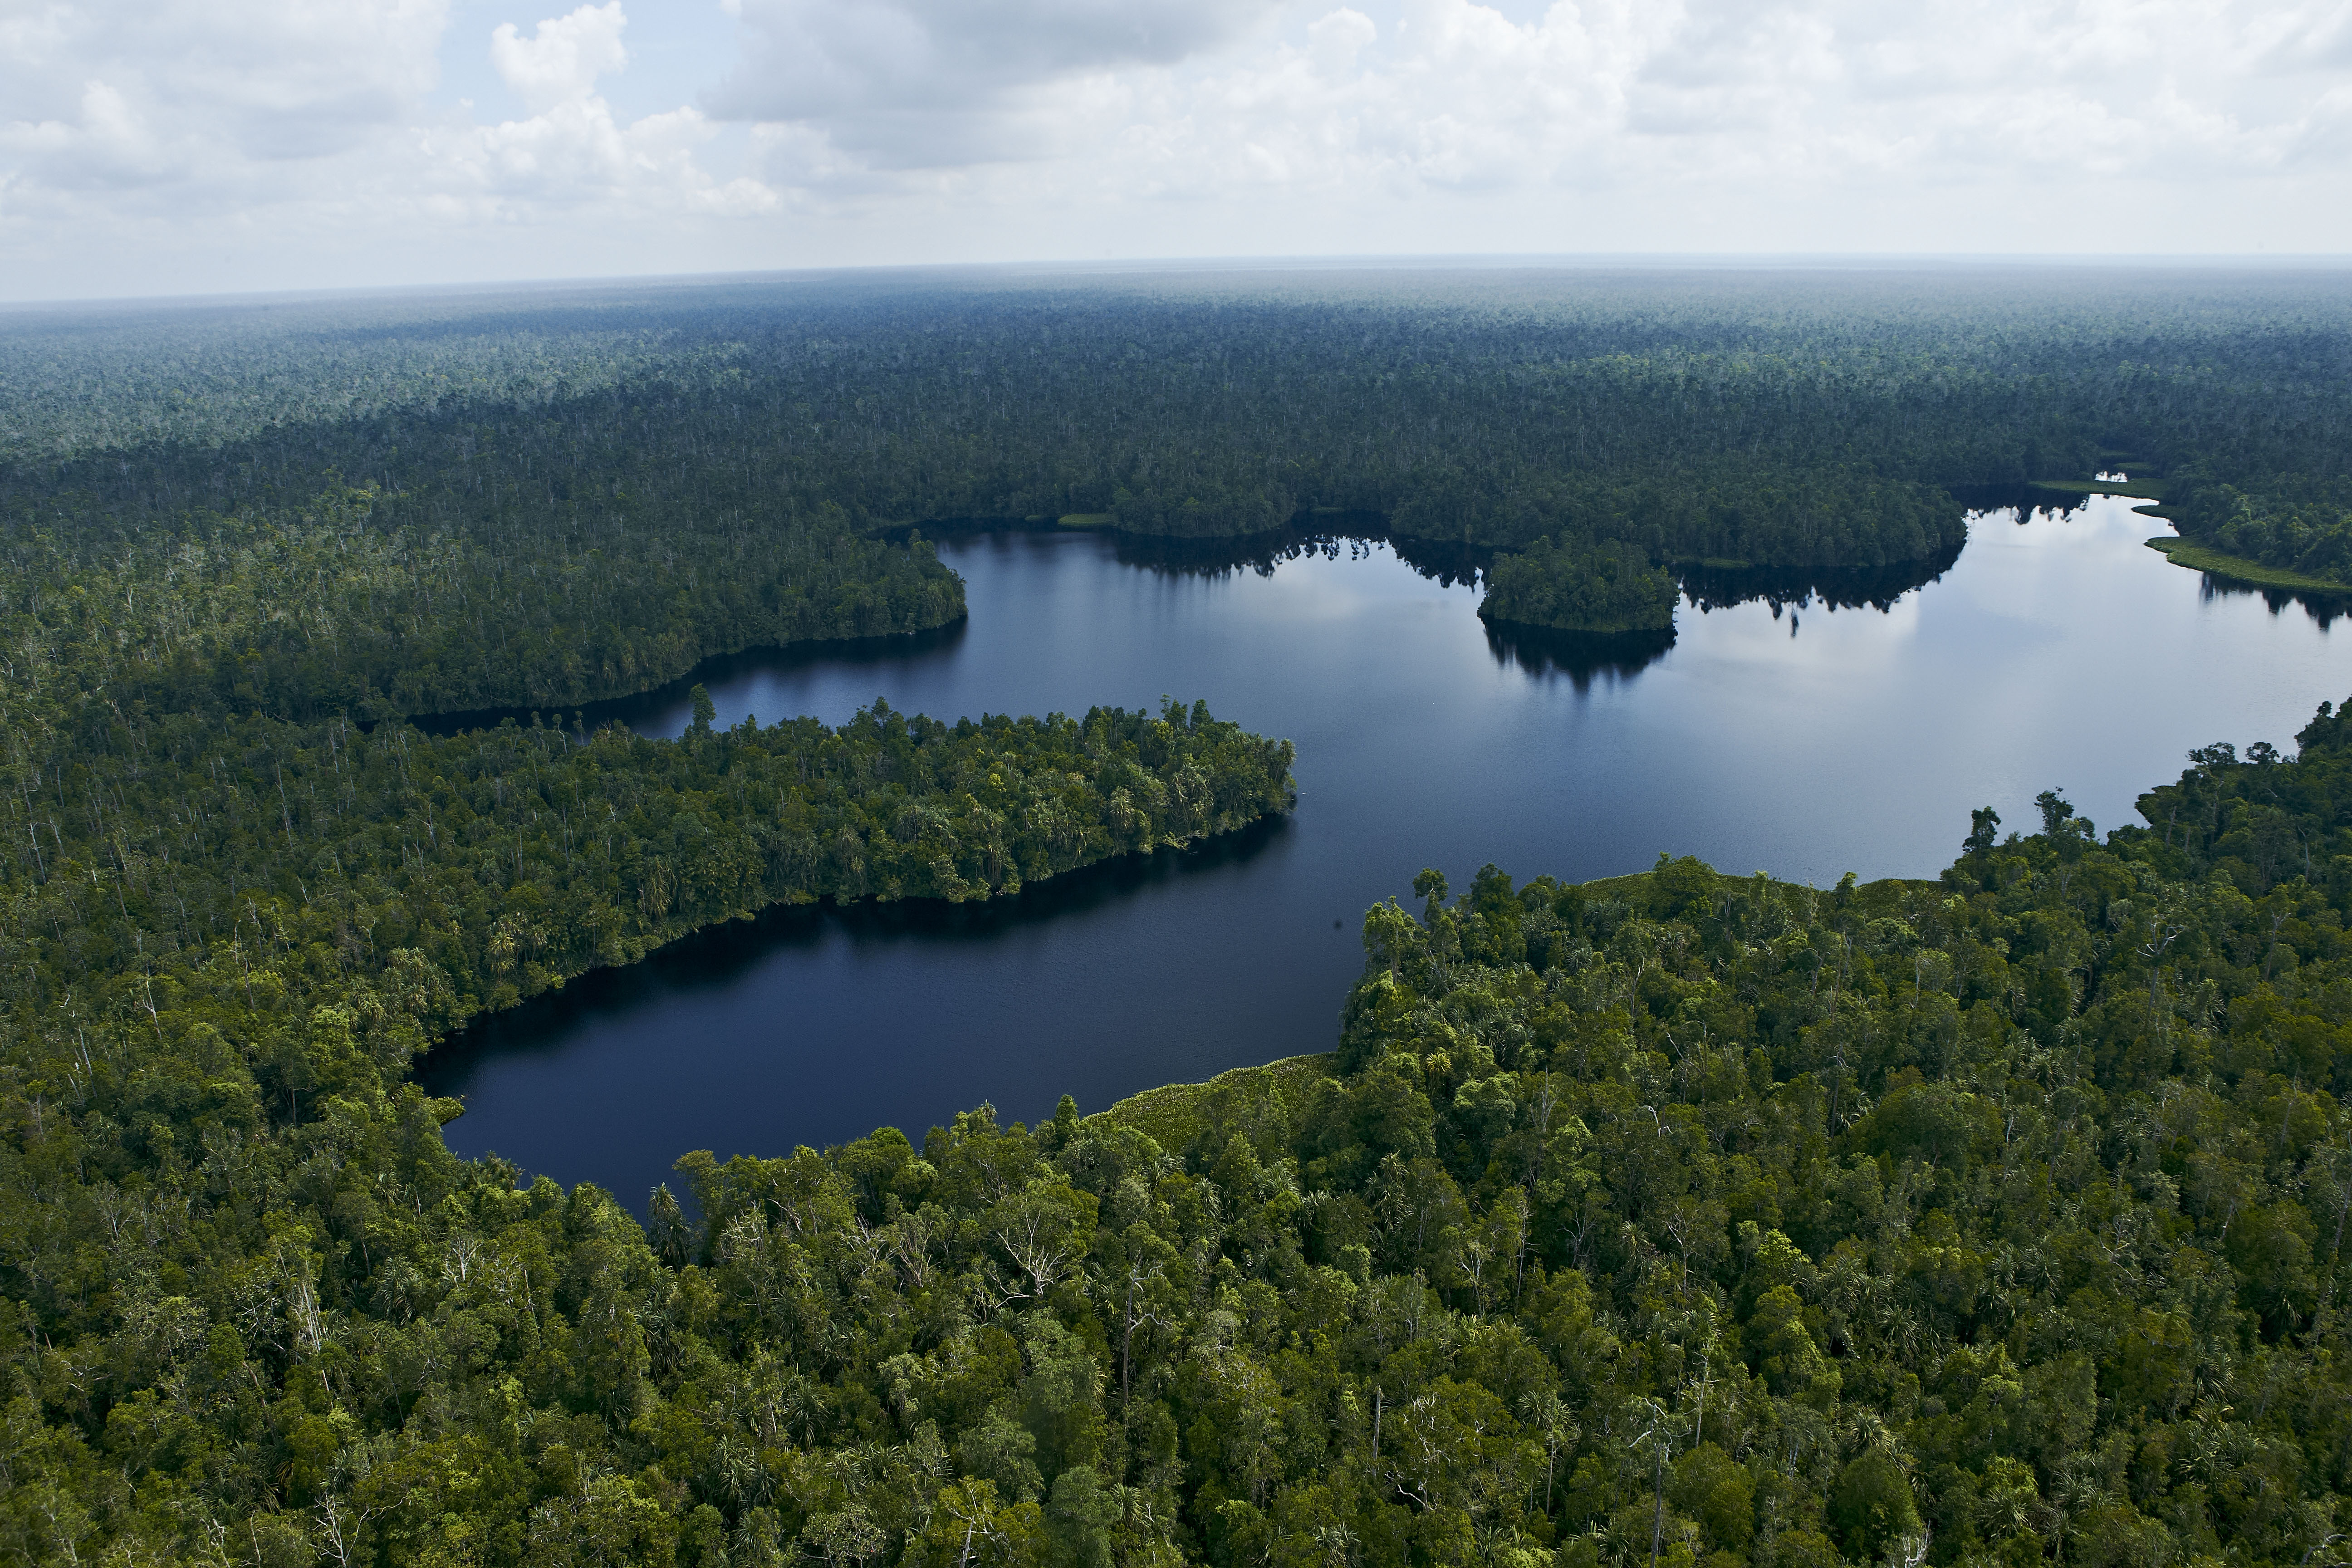 Restorasi Ekosistem Riau (RER) was launched in 2013 to protect ecologically important pat forest in Kampar Peninsula, Riau, Indonesia.